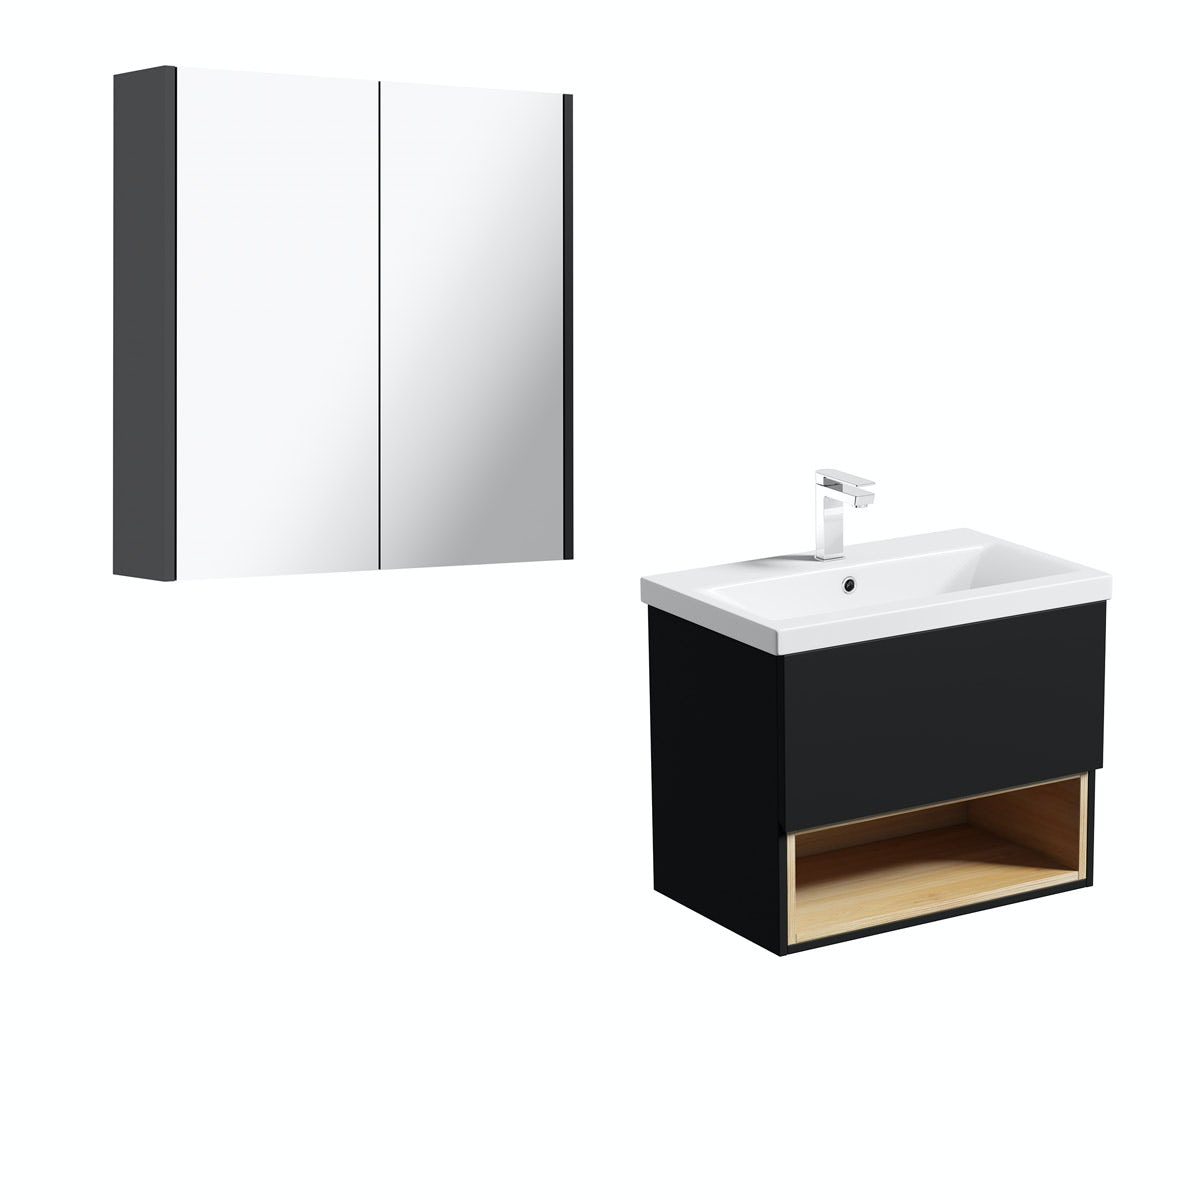 Mode Tate anthracite & oak wall hung vanity unit 600mm with mirror